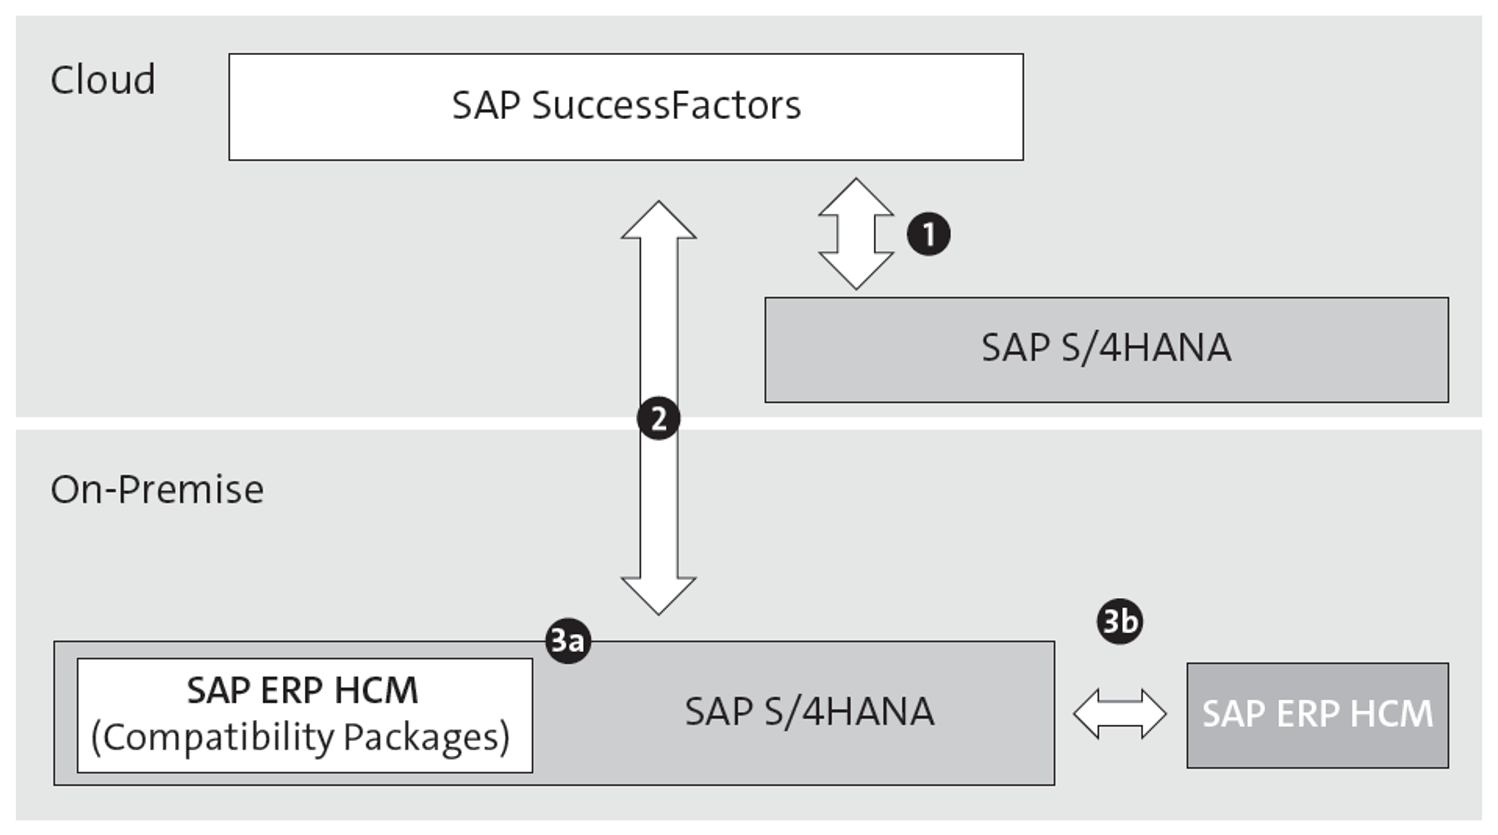 Deployment Variants for Human Resources Functions with SAP S/4HANA